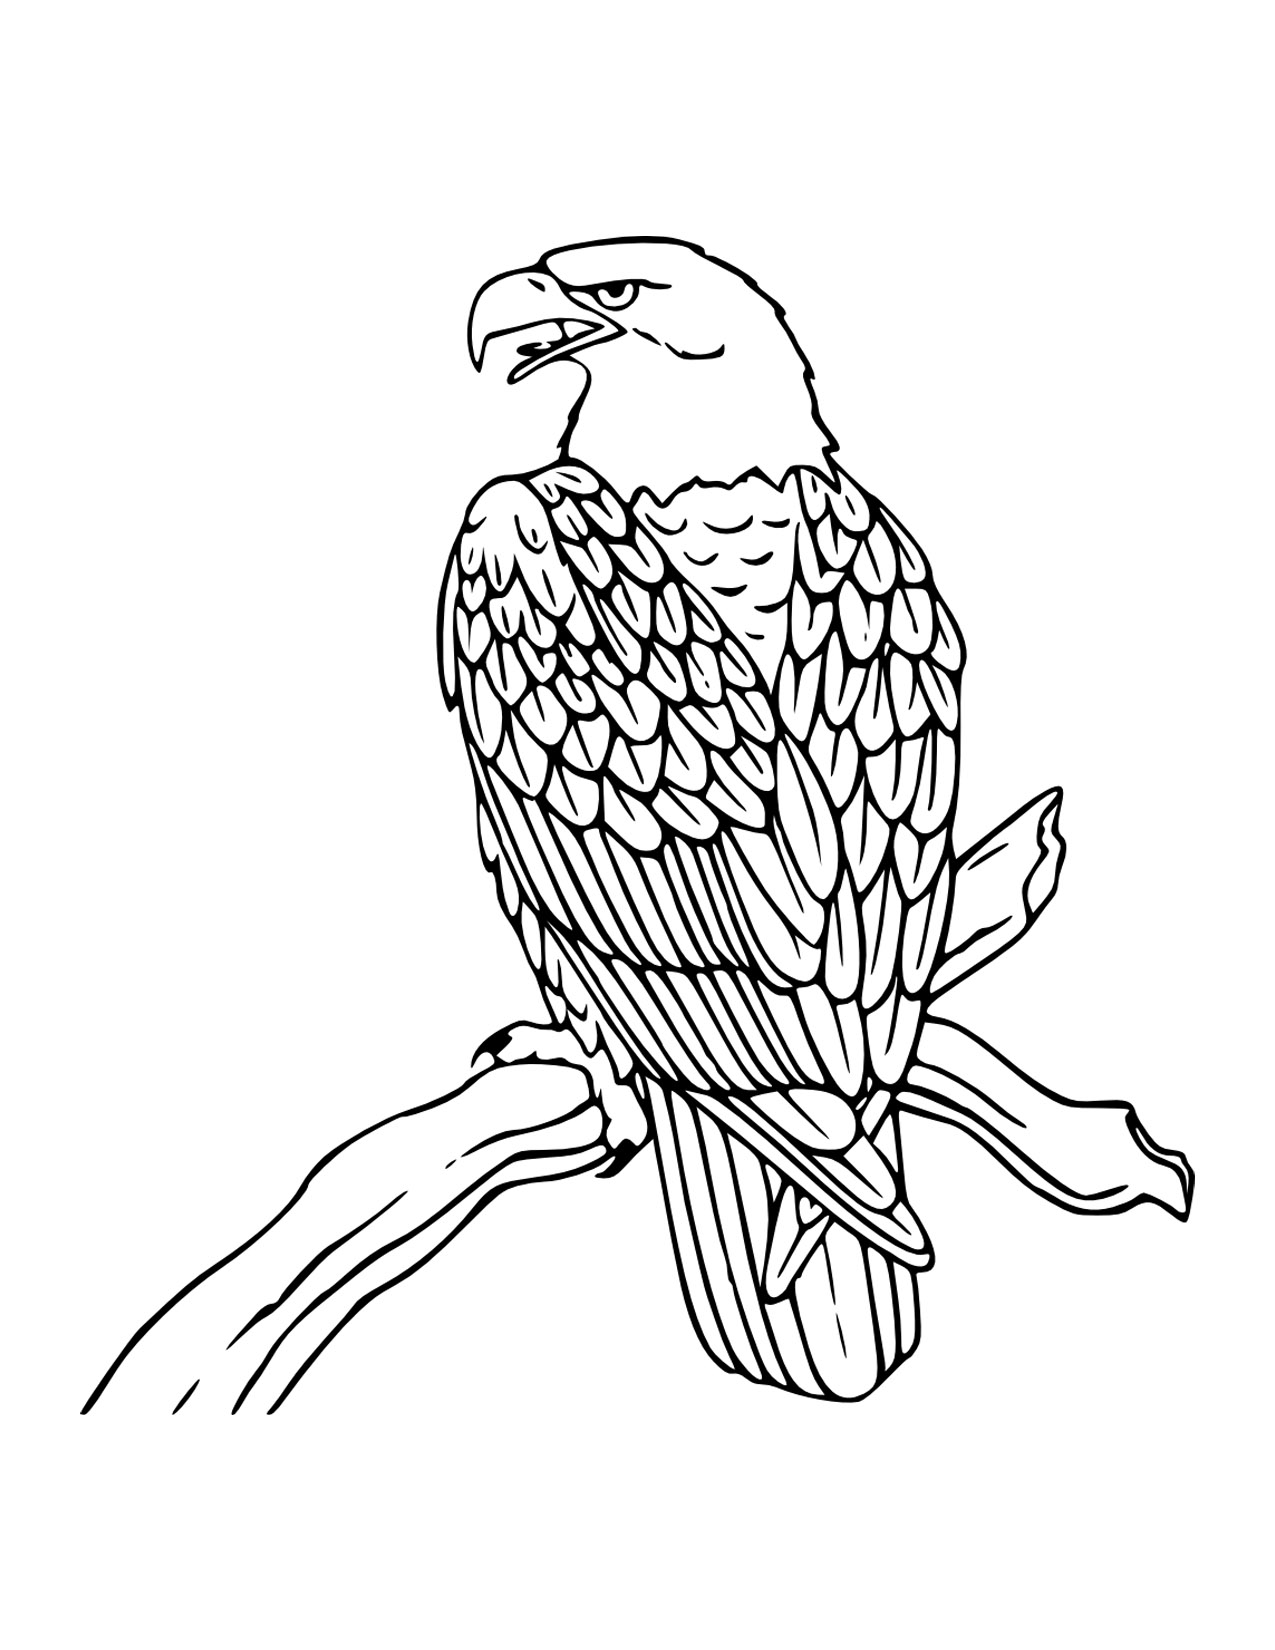 Coloring pages of bald eagles